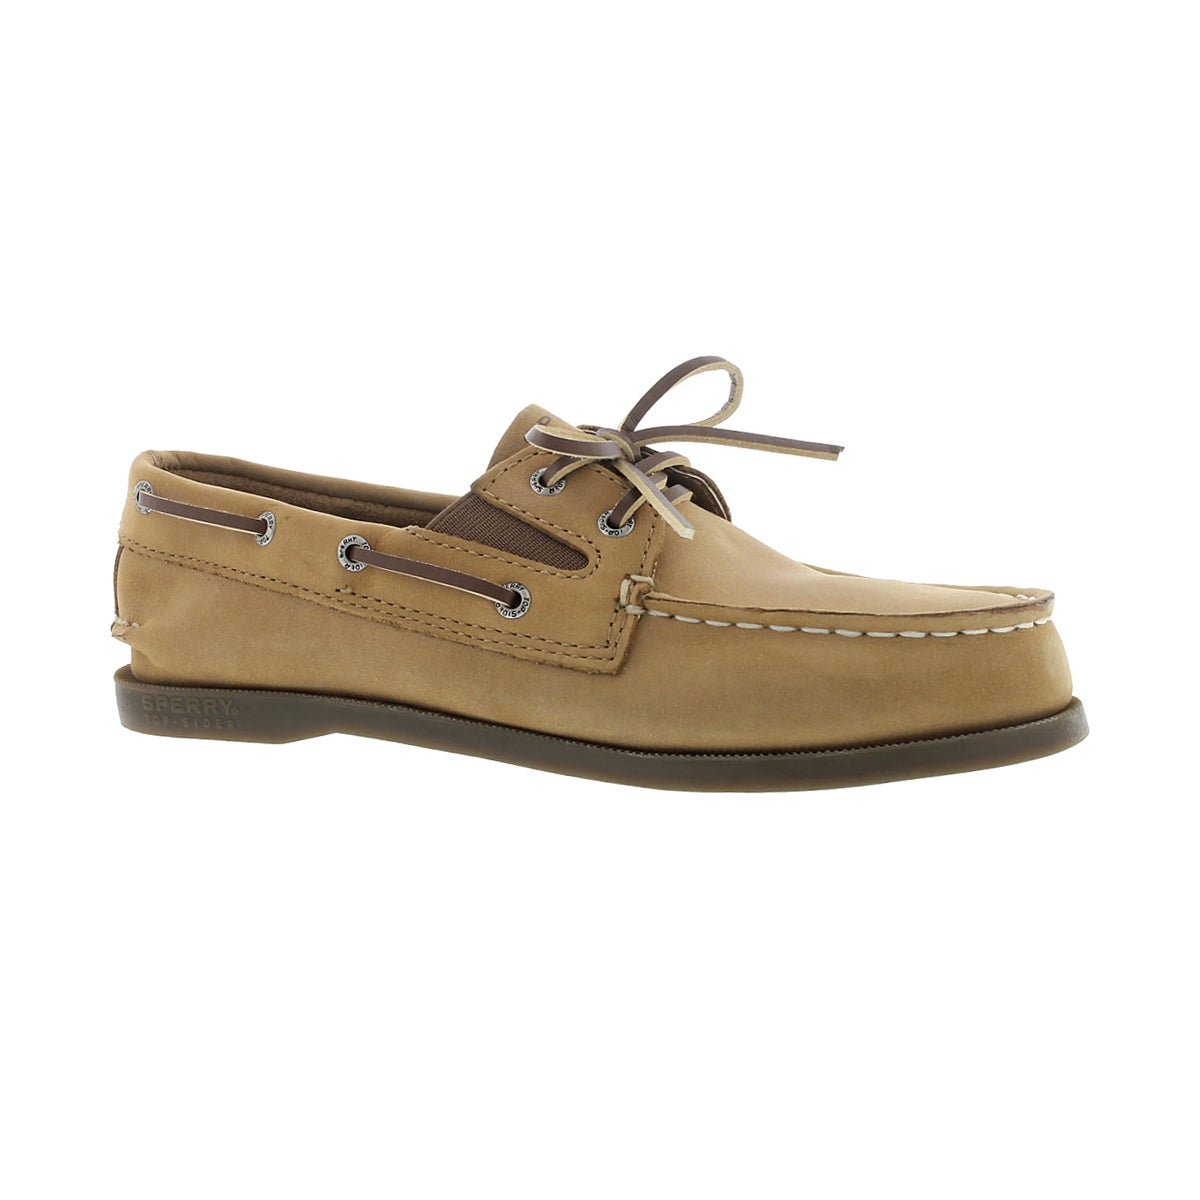 Boys' AUTHENTIC ORIGINAL SLIP ON sahara boat shoes